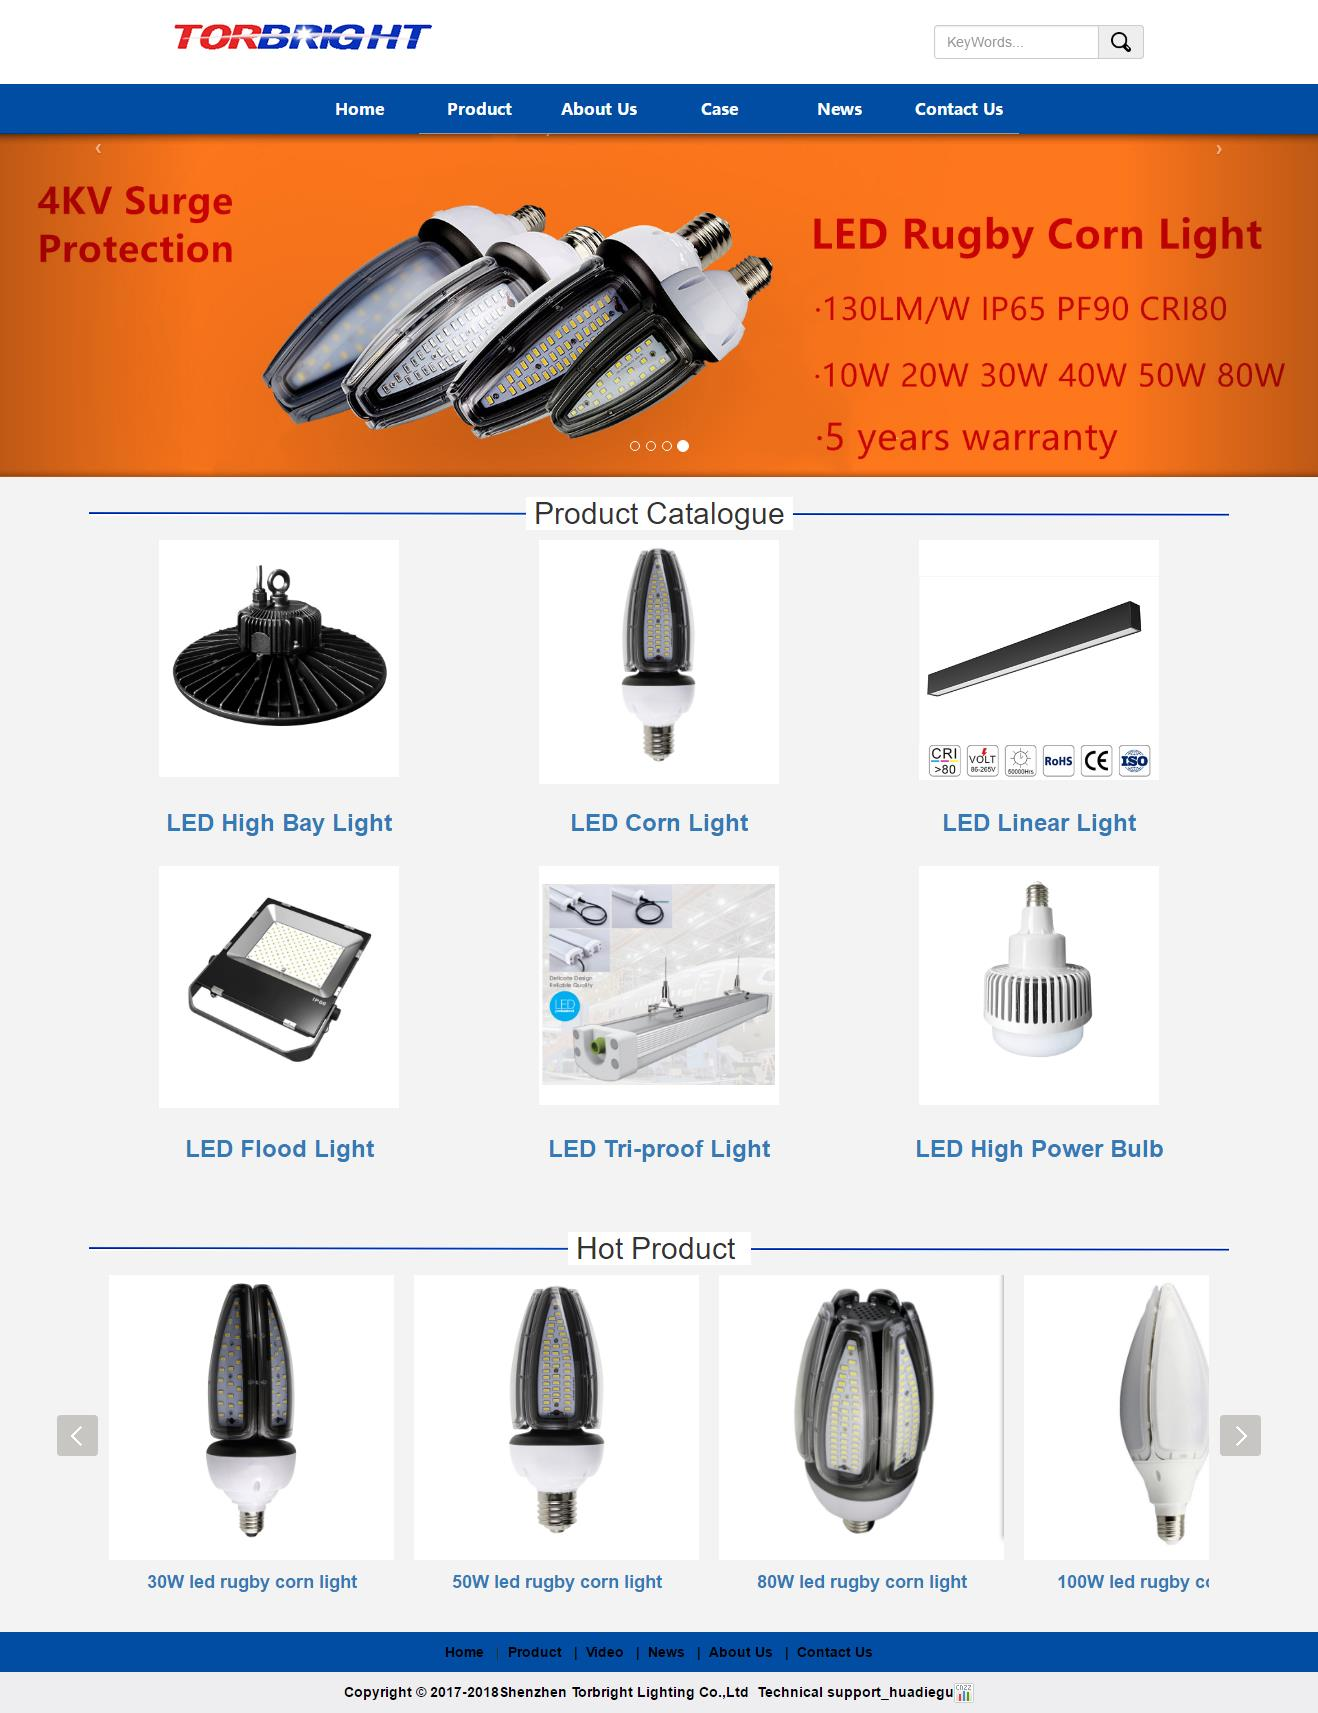 Shenzhen Torbright Lighting Co.,Ltd